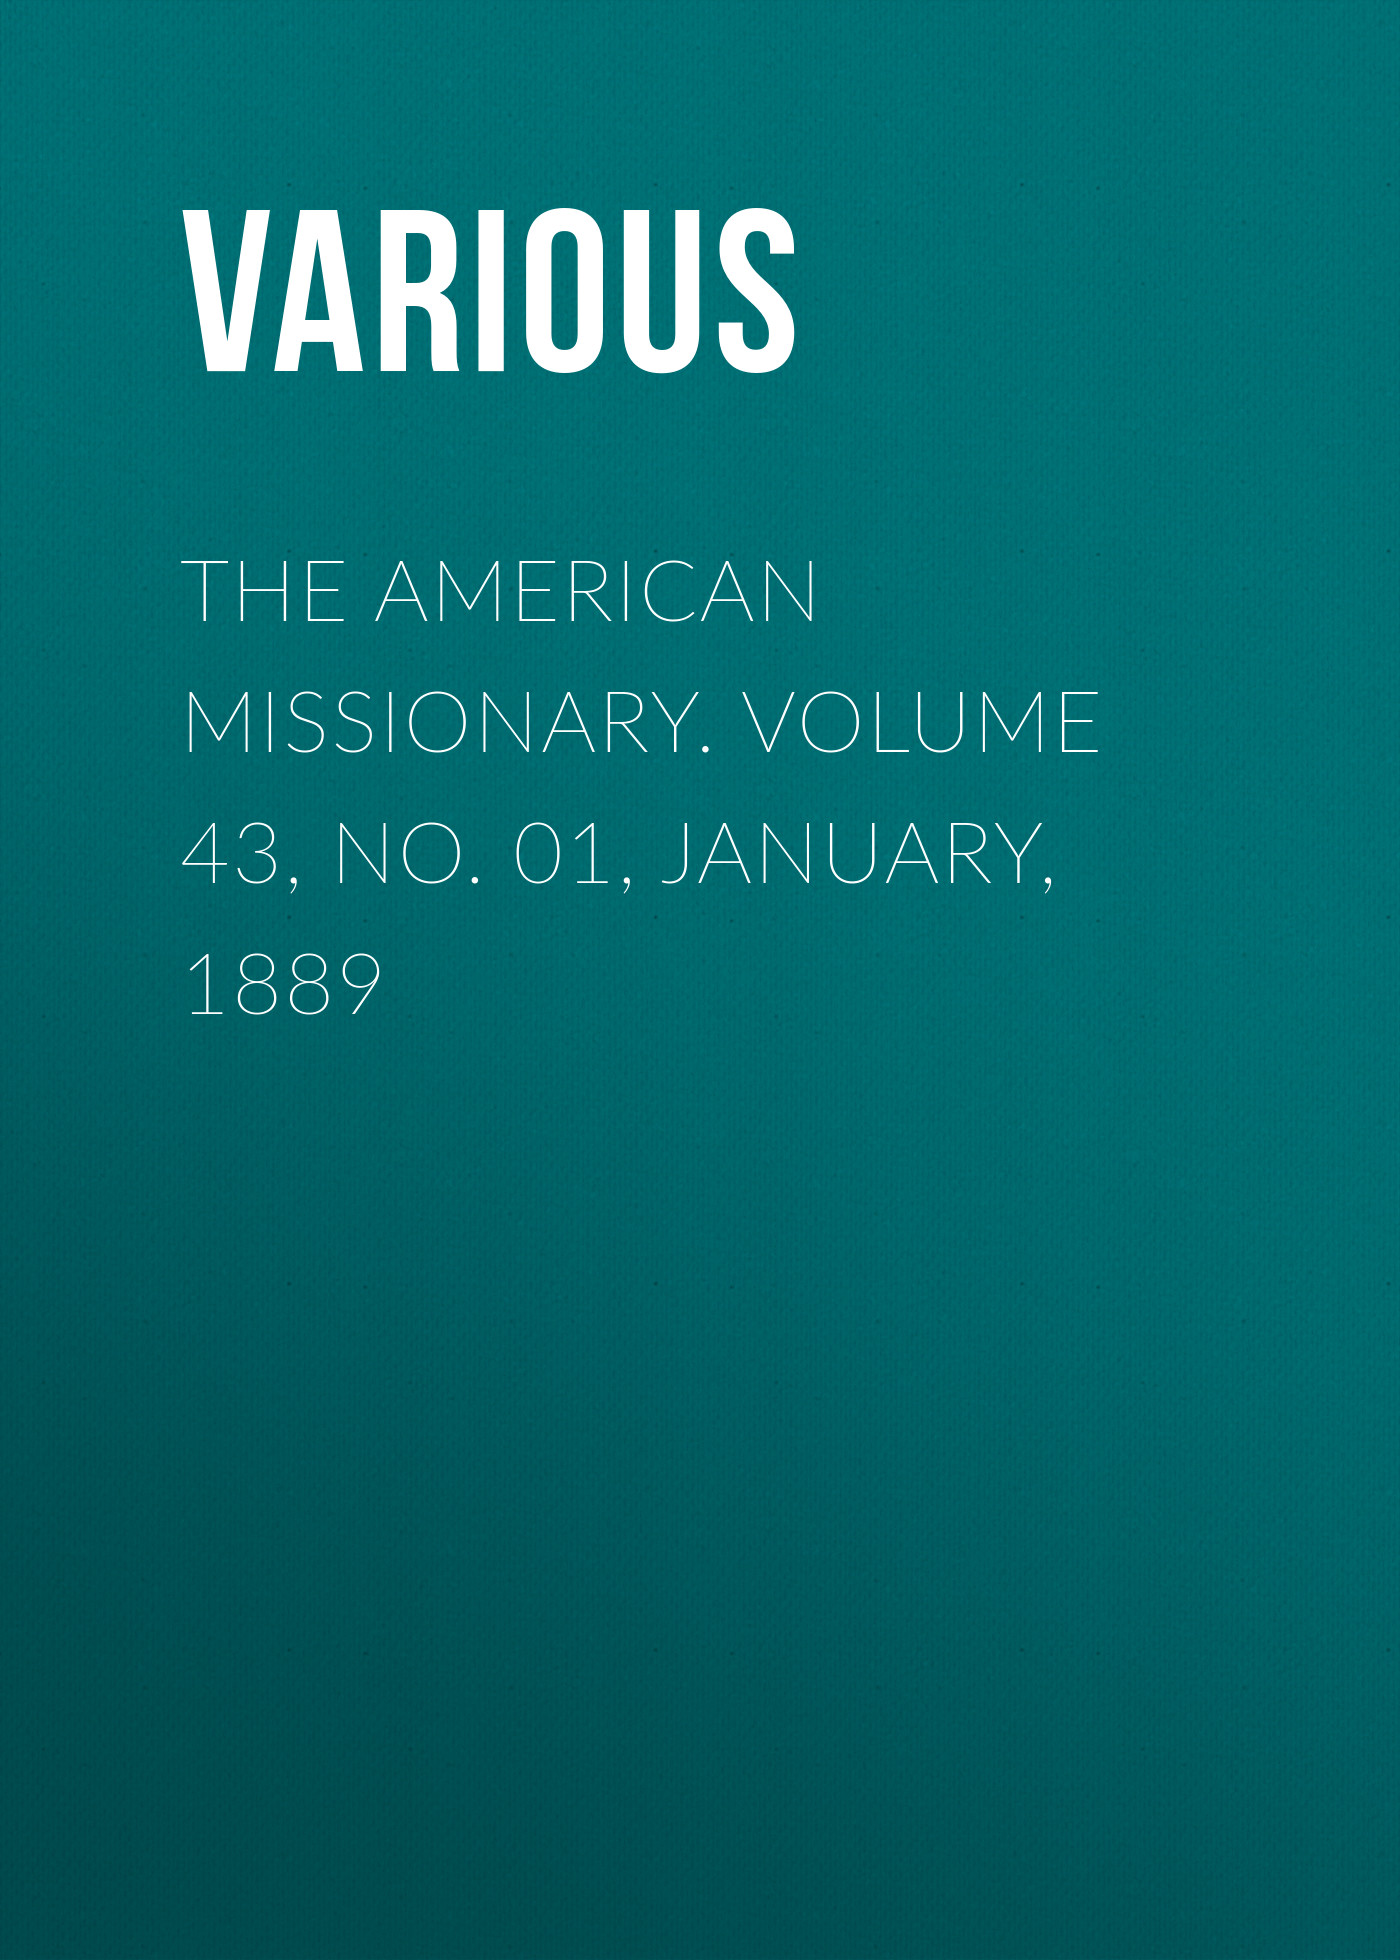 Various The American Missionary. Volume 43, No. 01, January, 1889